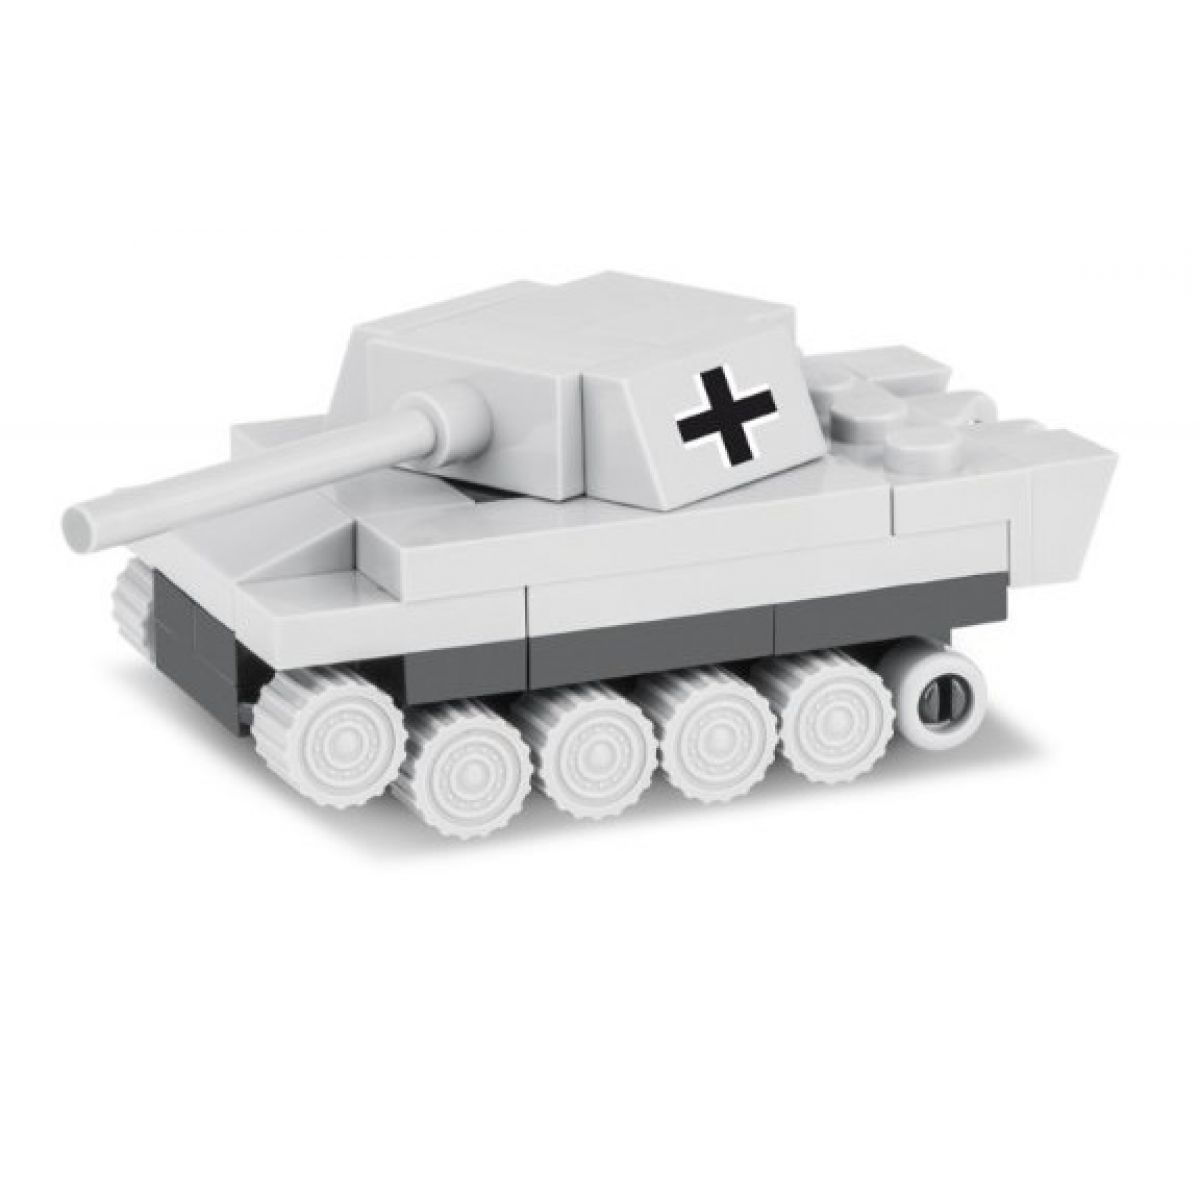 COBI 3019 WORLD of TANKS Nano Tank Panther 60 k